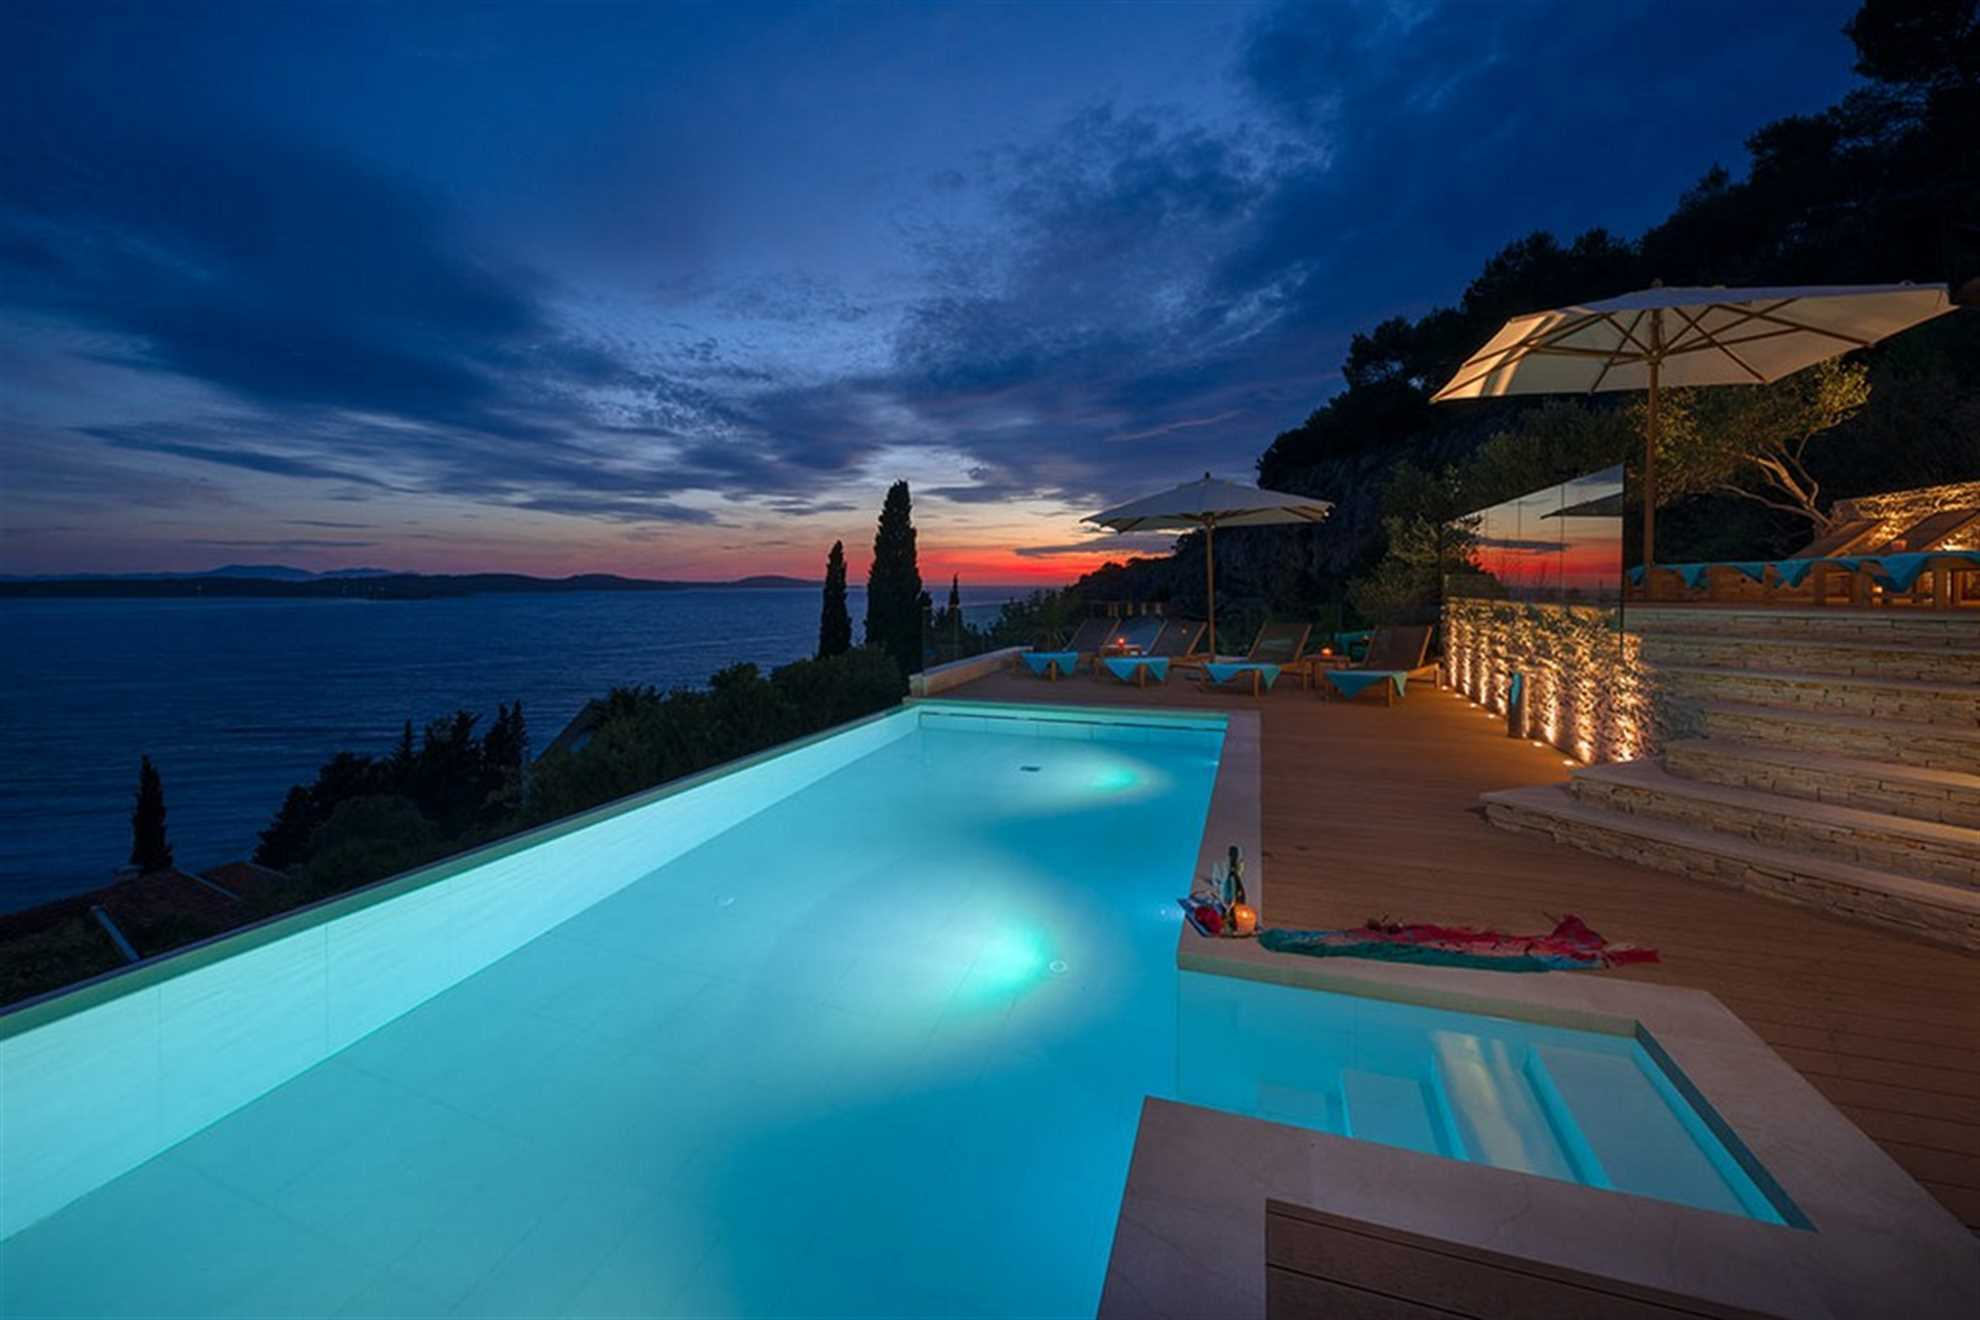 Stunning sunsets from the Pool Area of The Villa Hvar Residence with Swimming Pool in Hvar